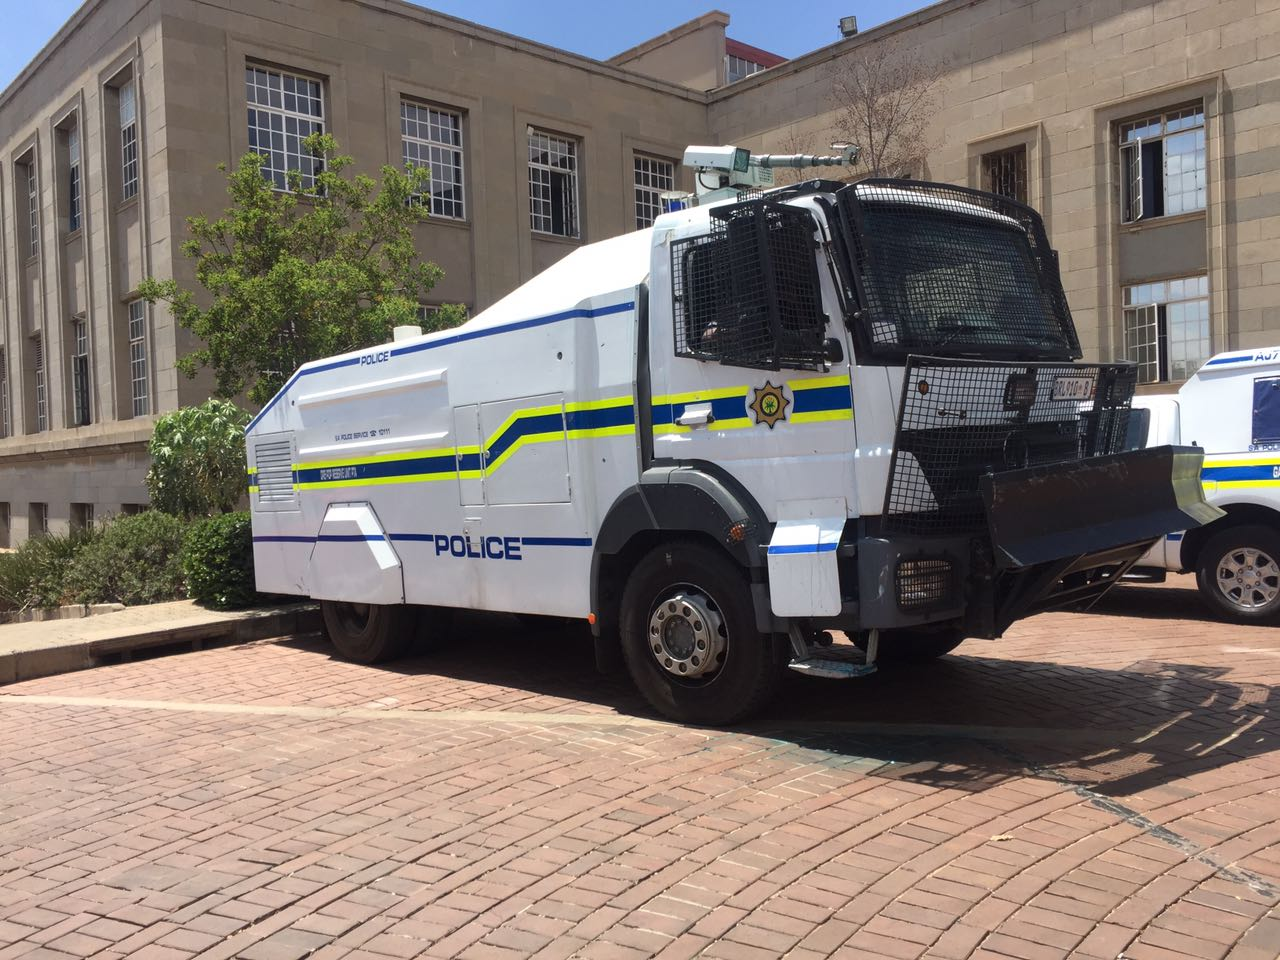 #FeesMustFall Week 4, day 3 – A student's diary